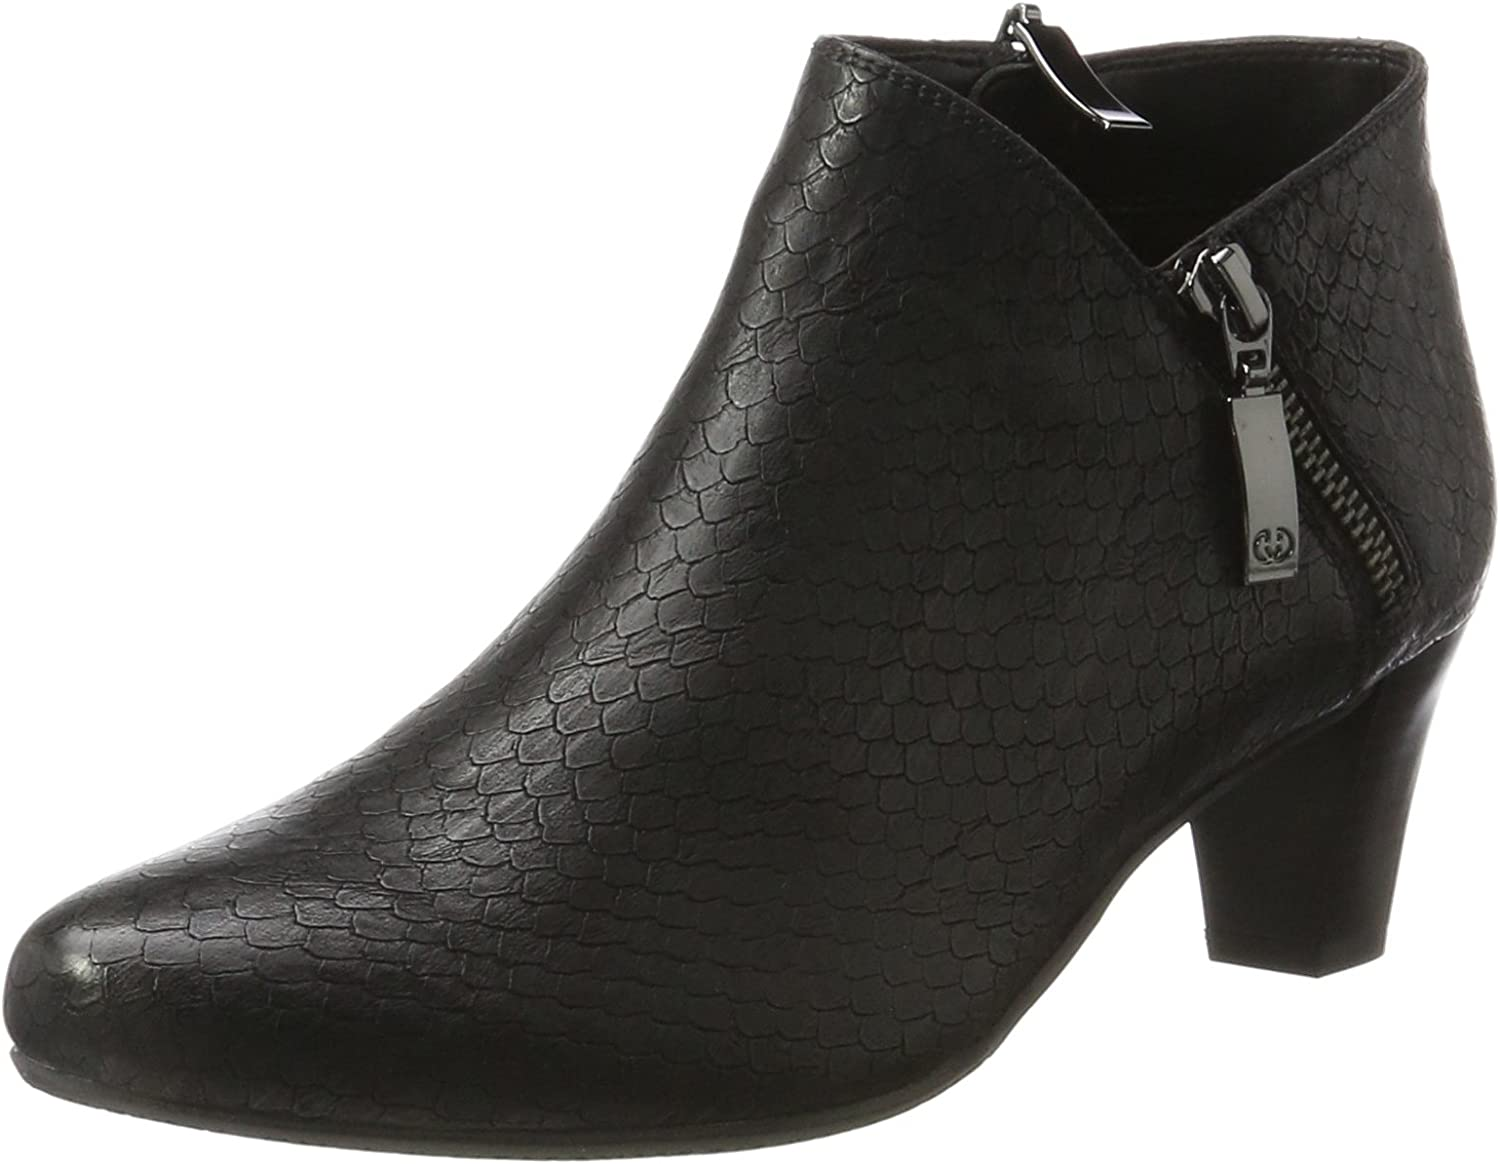 Gerry Weber Women Ankle Boots Grey, (grey) G39227MI830 710